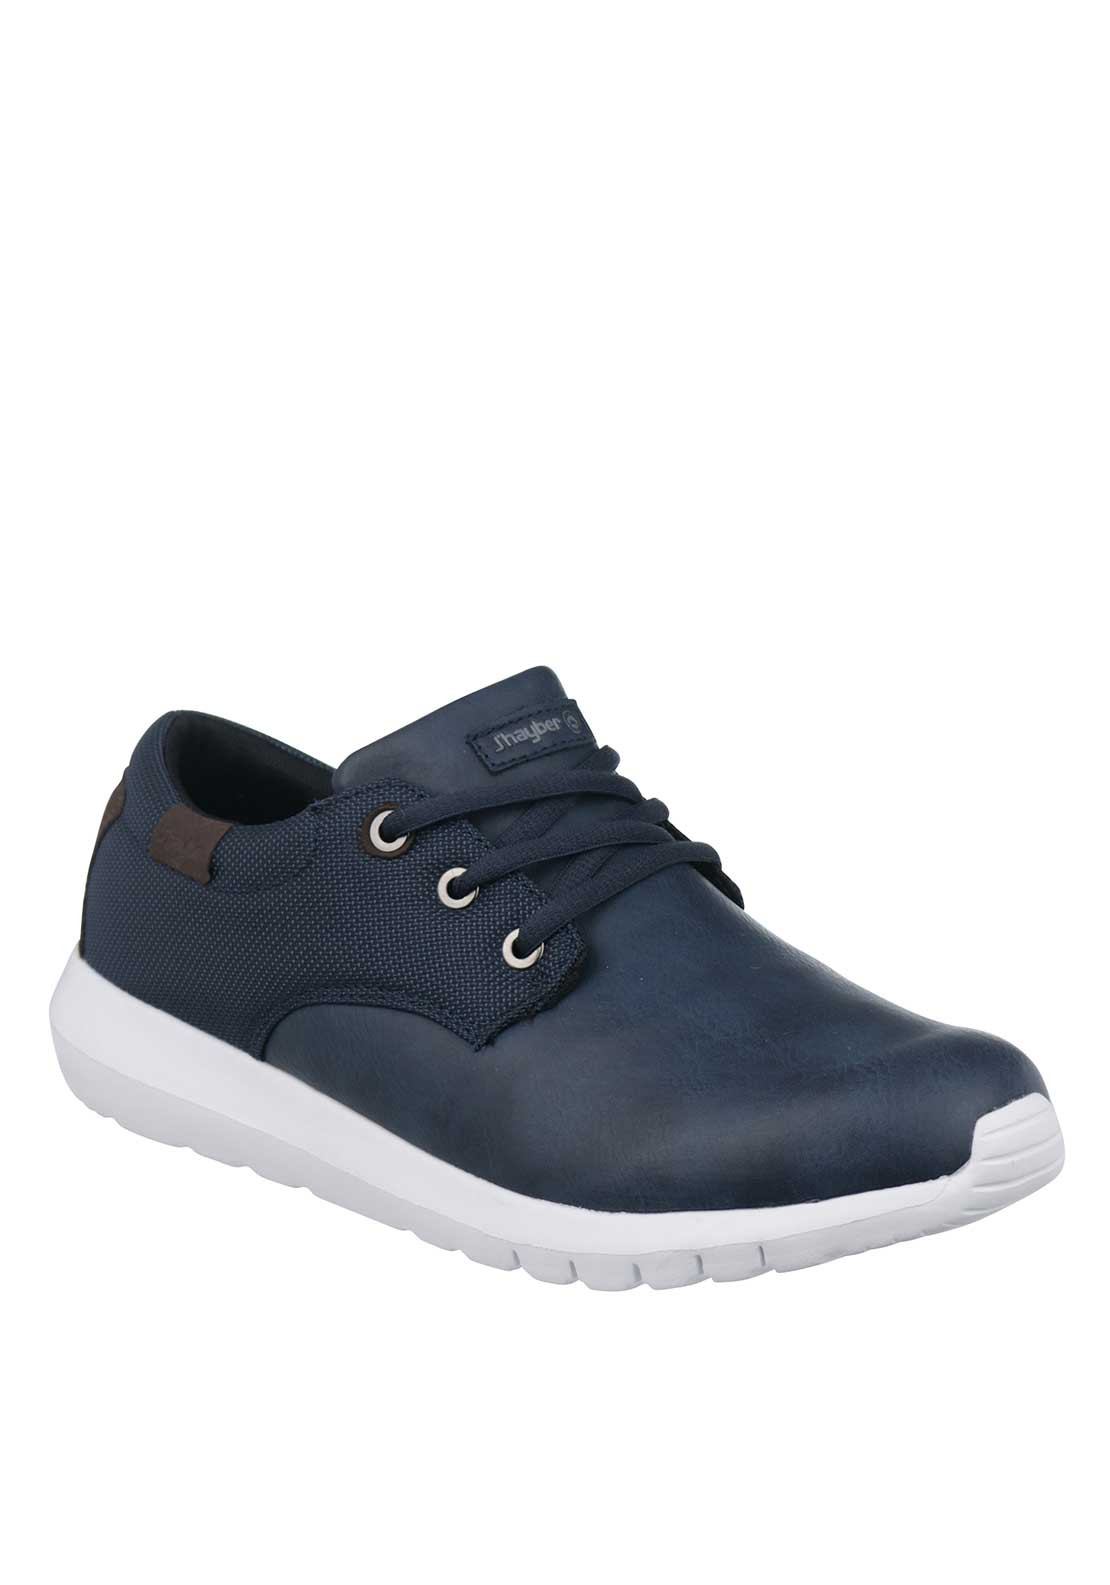 J'hayber Mens Chabeta Trainers, Navy